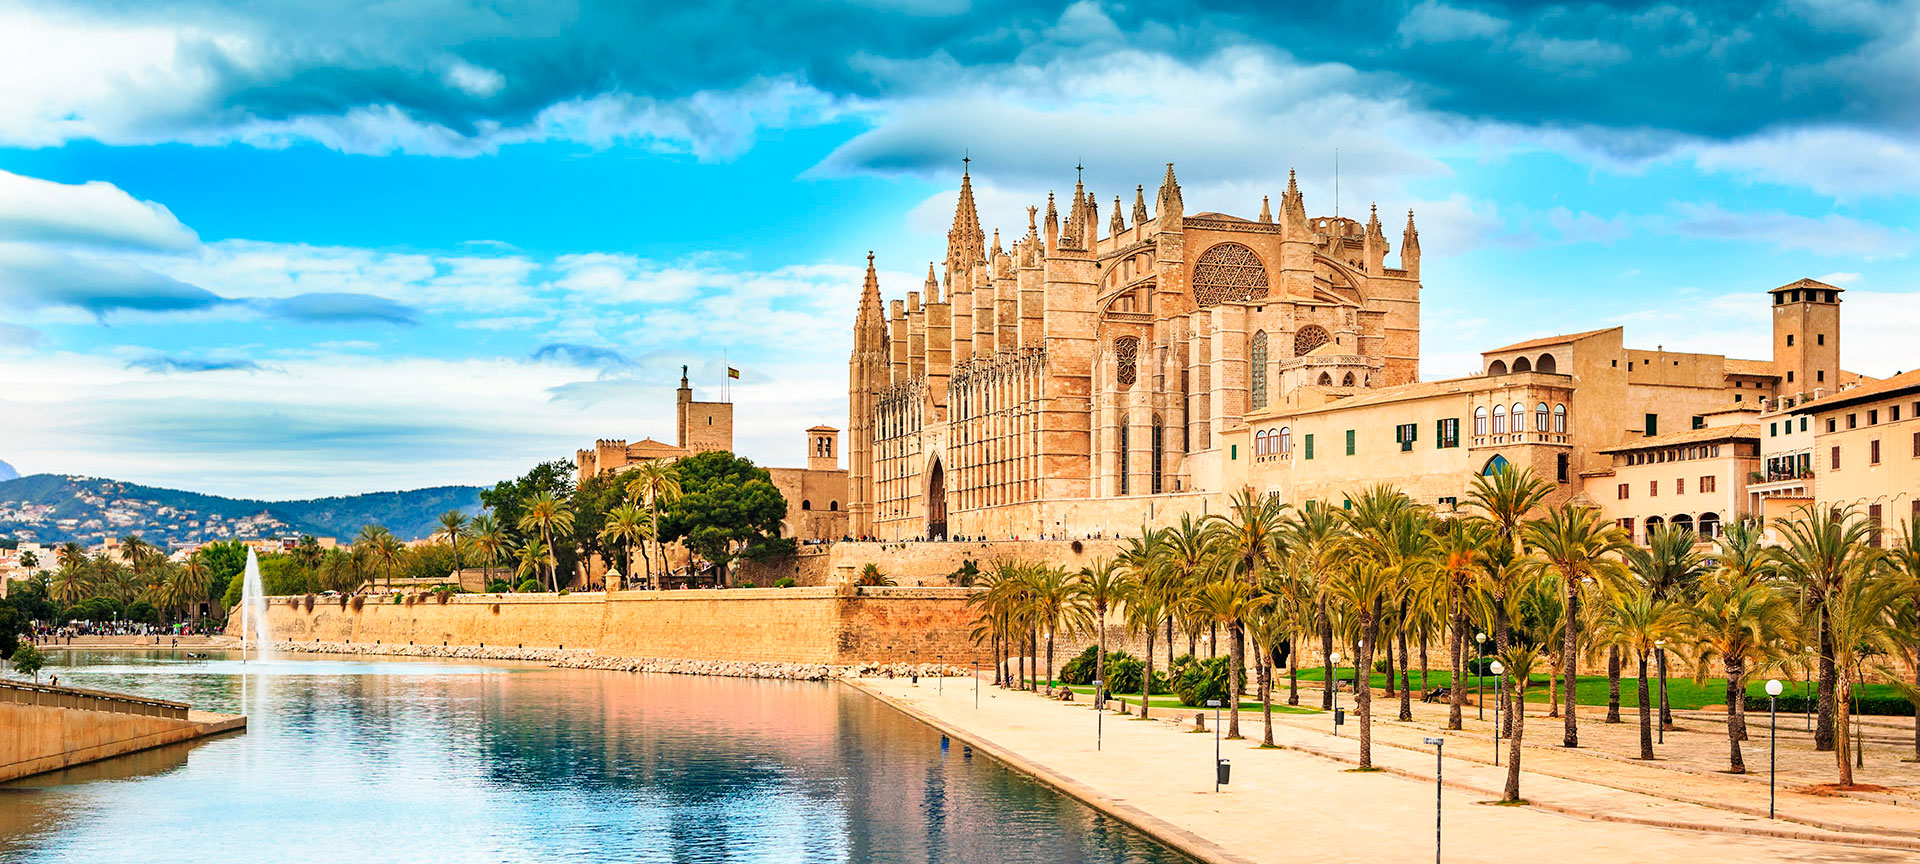 tourism in palma what to see tourist